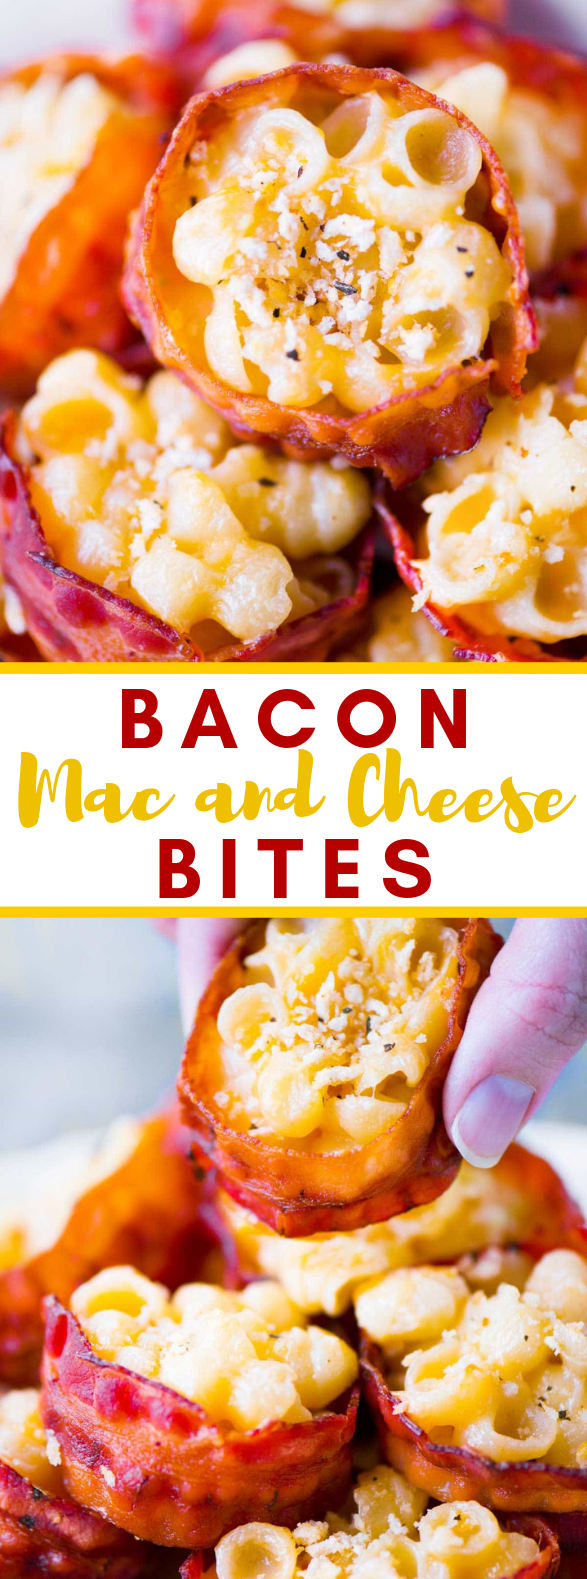 Bacon Mac and Cheese Bites #appetizer #dinner